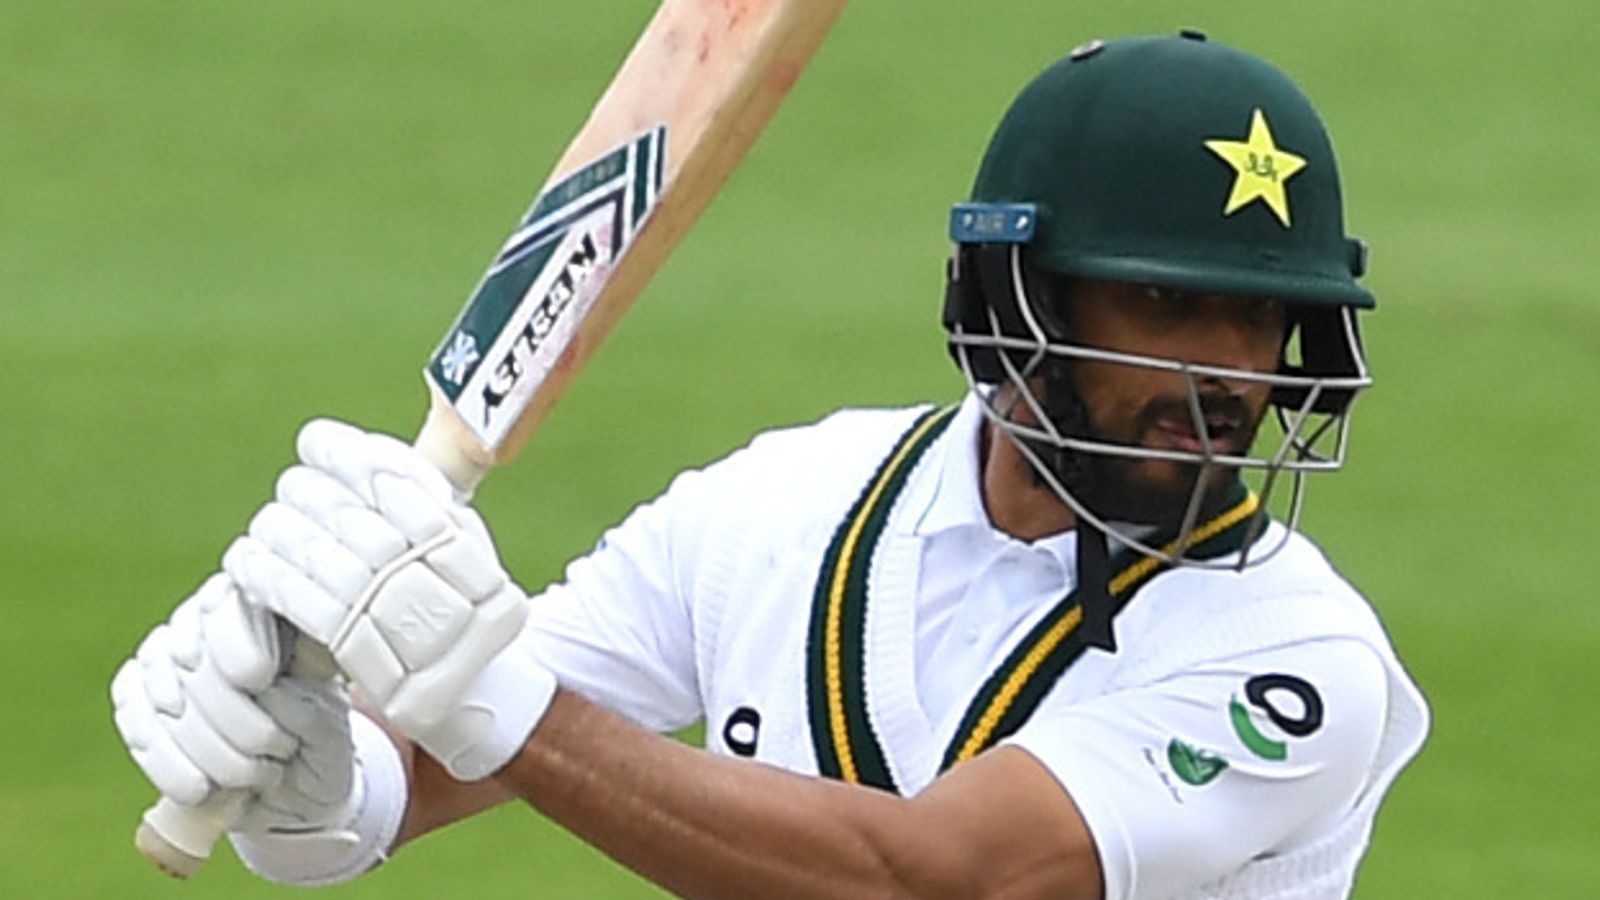 Pakistan's Shan Masood played like Alastair Cook during hundred against England, says Alec Stewart